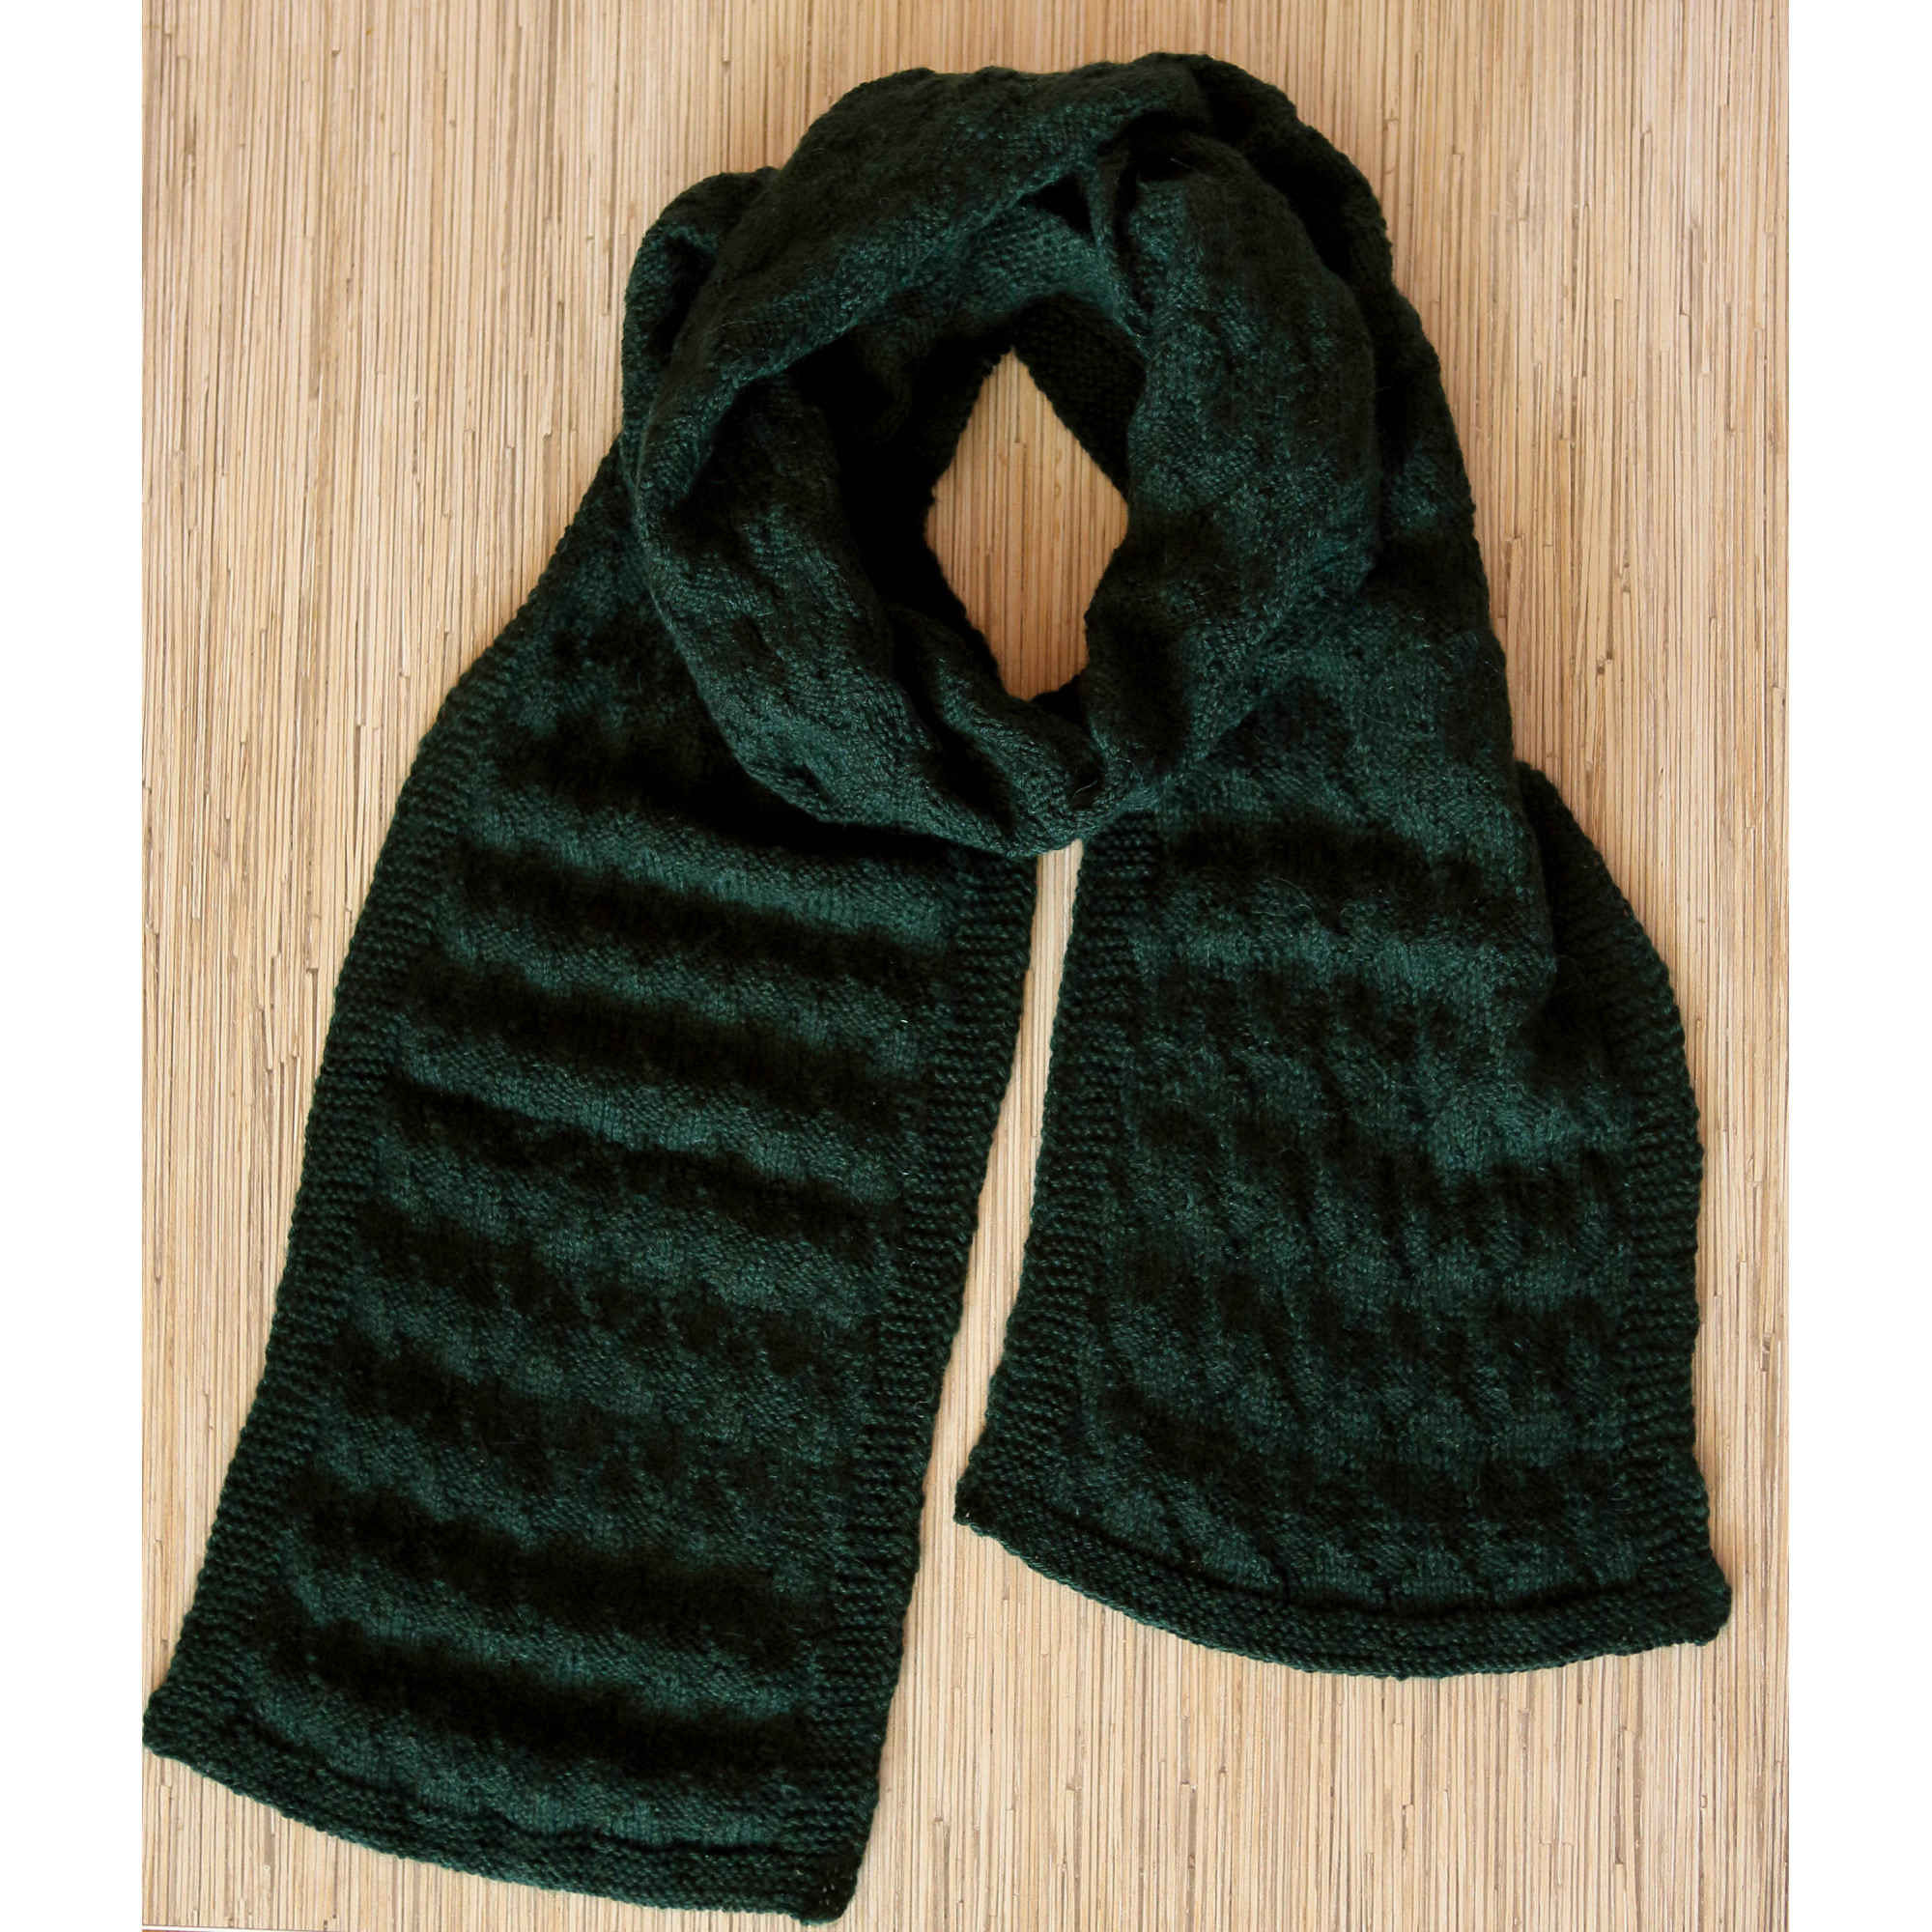 Knitted Infinity Scarf Green Winter Scarf